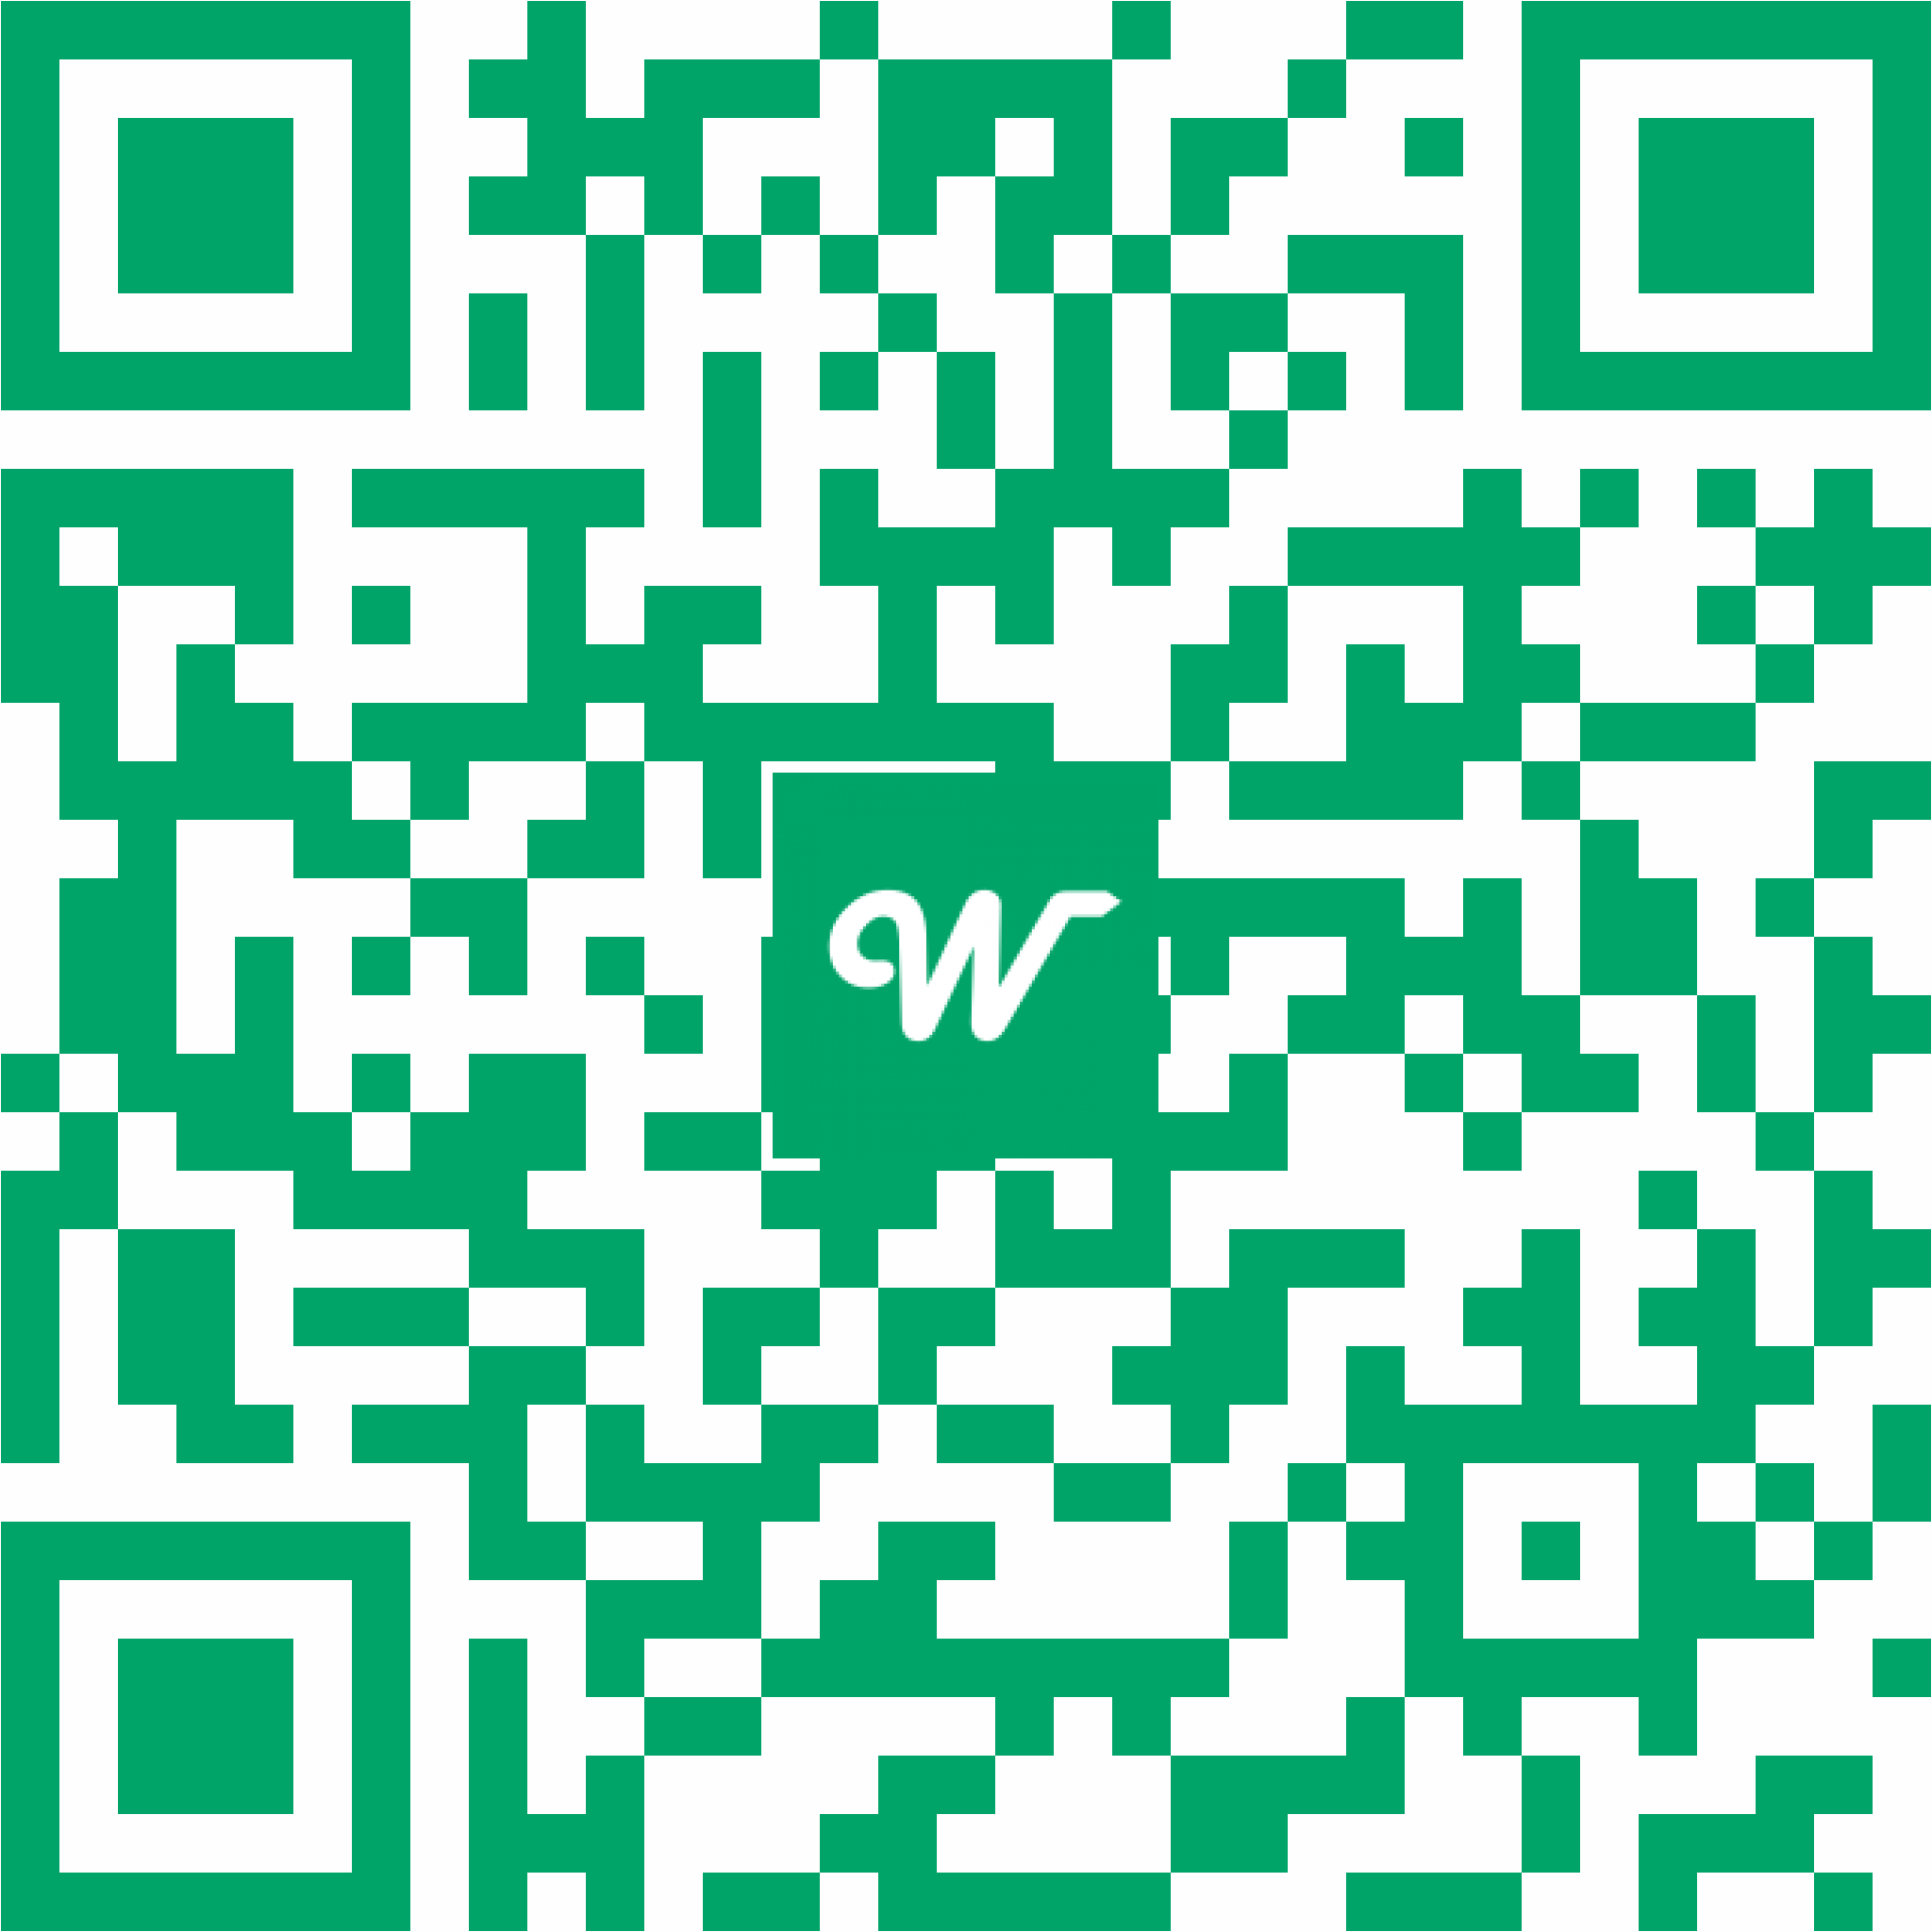 Printable QR code for 119 N Peoria St